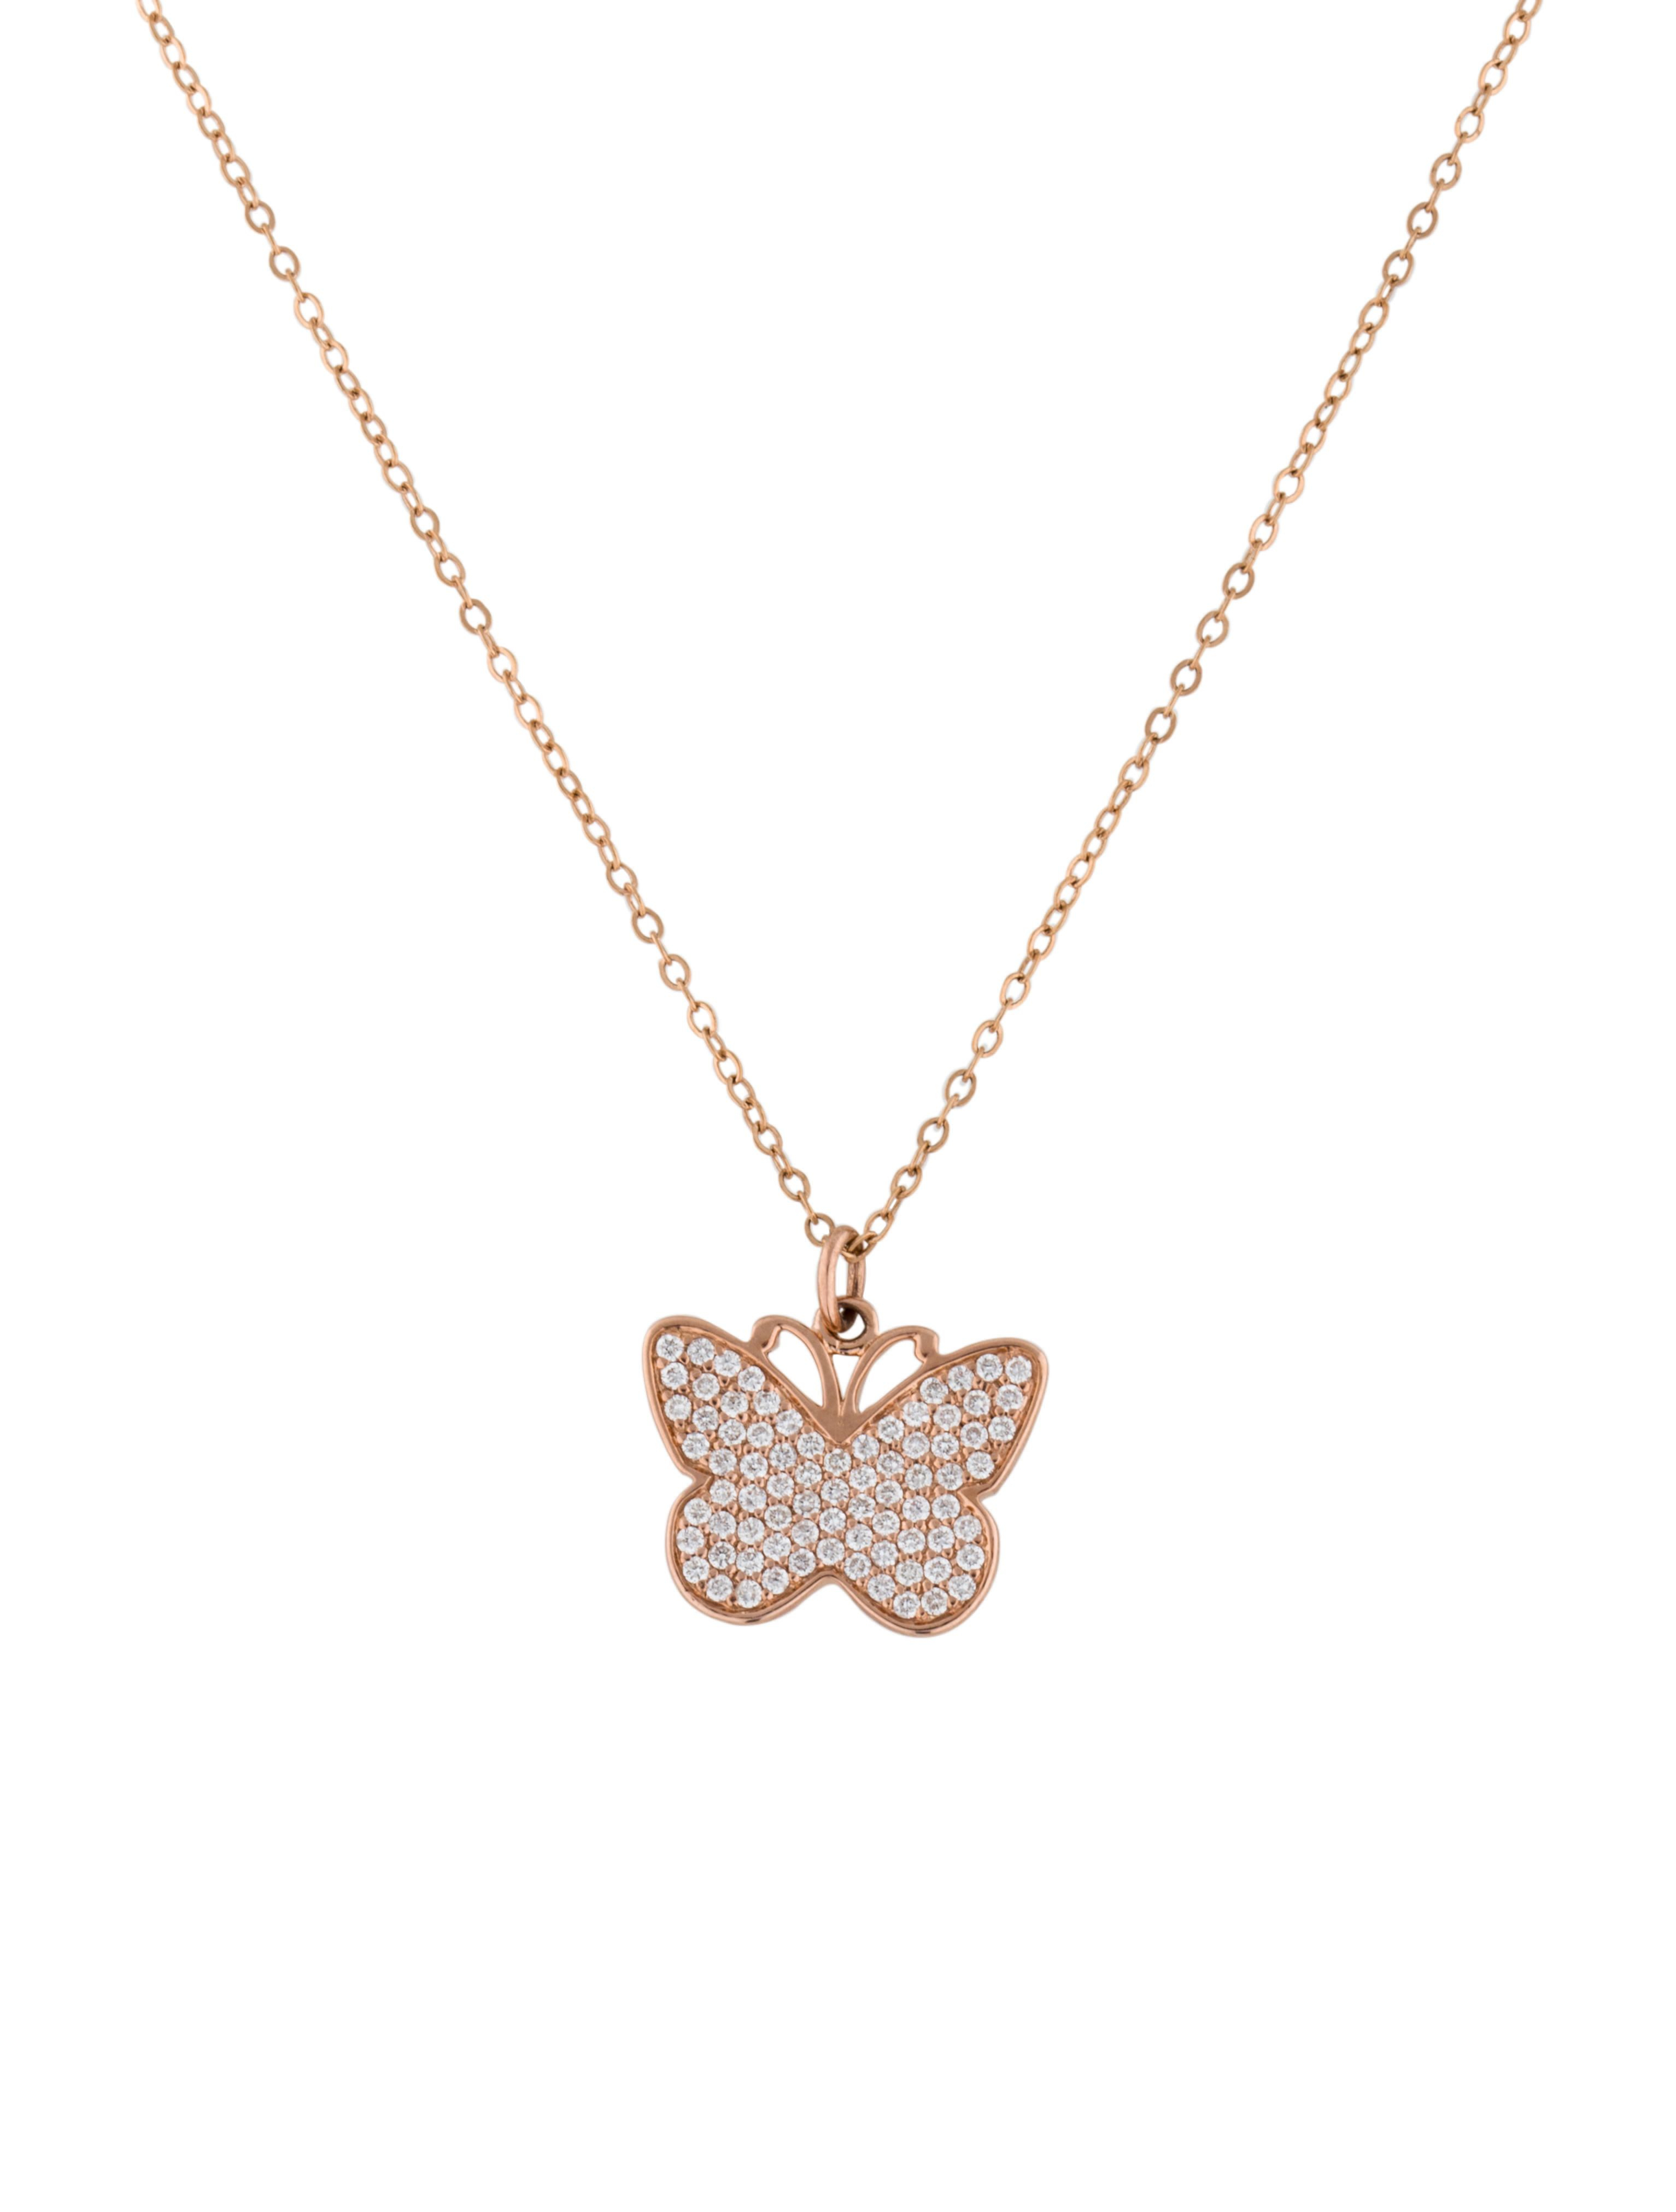 Diamond Pavé Butterfly Pendant Necklace | Prized Papillons Pertaining To Most Recently Released Blue Pavé Butterfly Brooch Necklaces (Gallery 23 of 25)